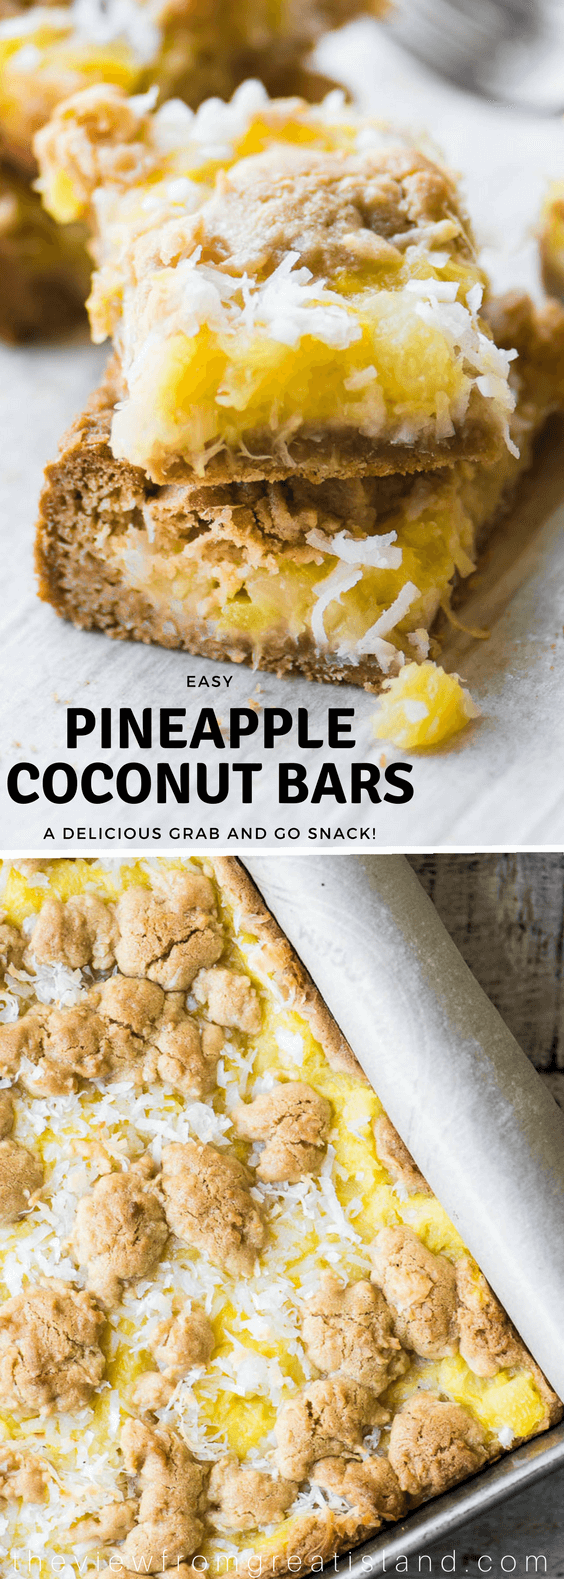 Pineapple Coconut Bars are a an easy tropical inspired treat made with juicy crushed pineapple, coconut, and a brown sugar shortbread crust ~ perfect for breakfast, bunch, or all day snacking. #pineapplebars #pineapplecoconut #blondies #squares #dessert #pineappledessert #potluckdessert #brunch